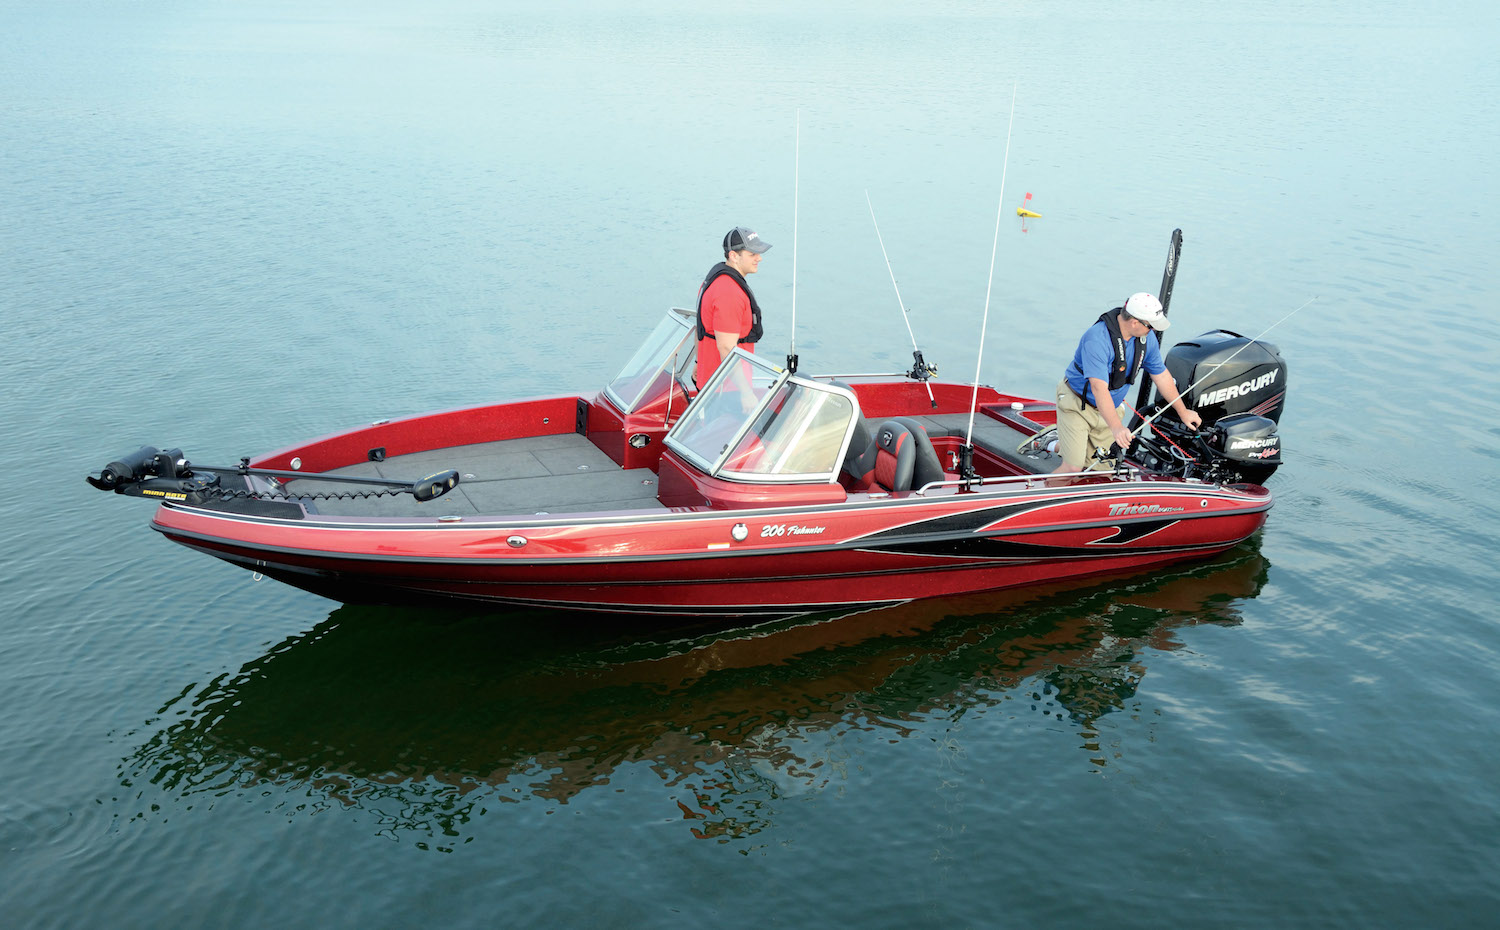 Triton 206 Fishunter